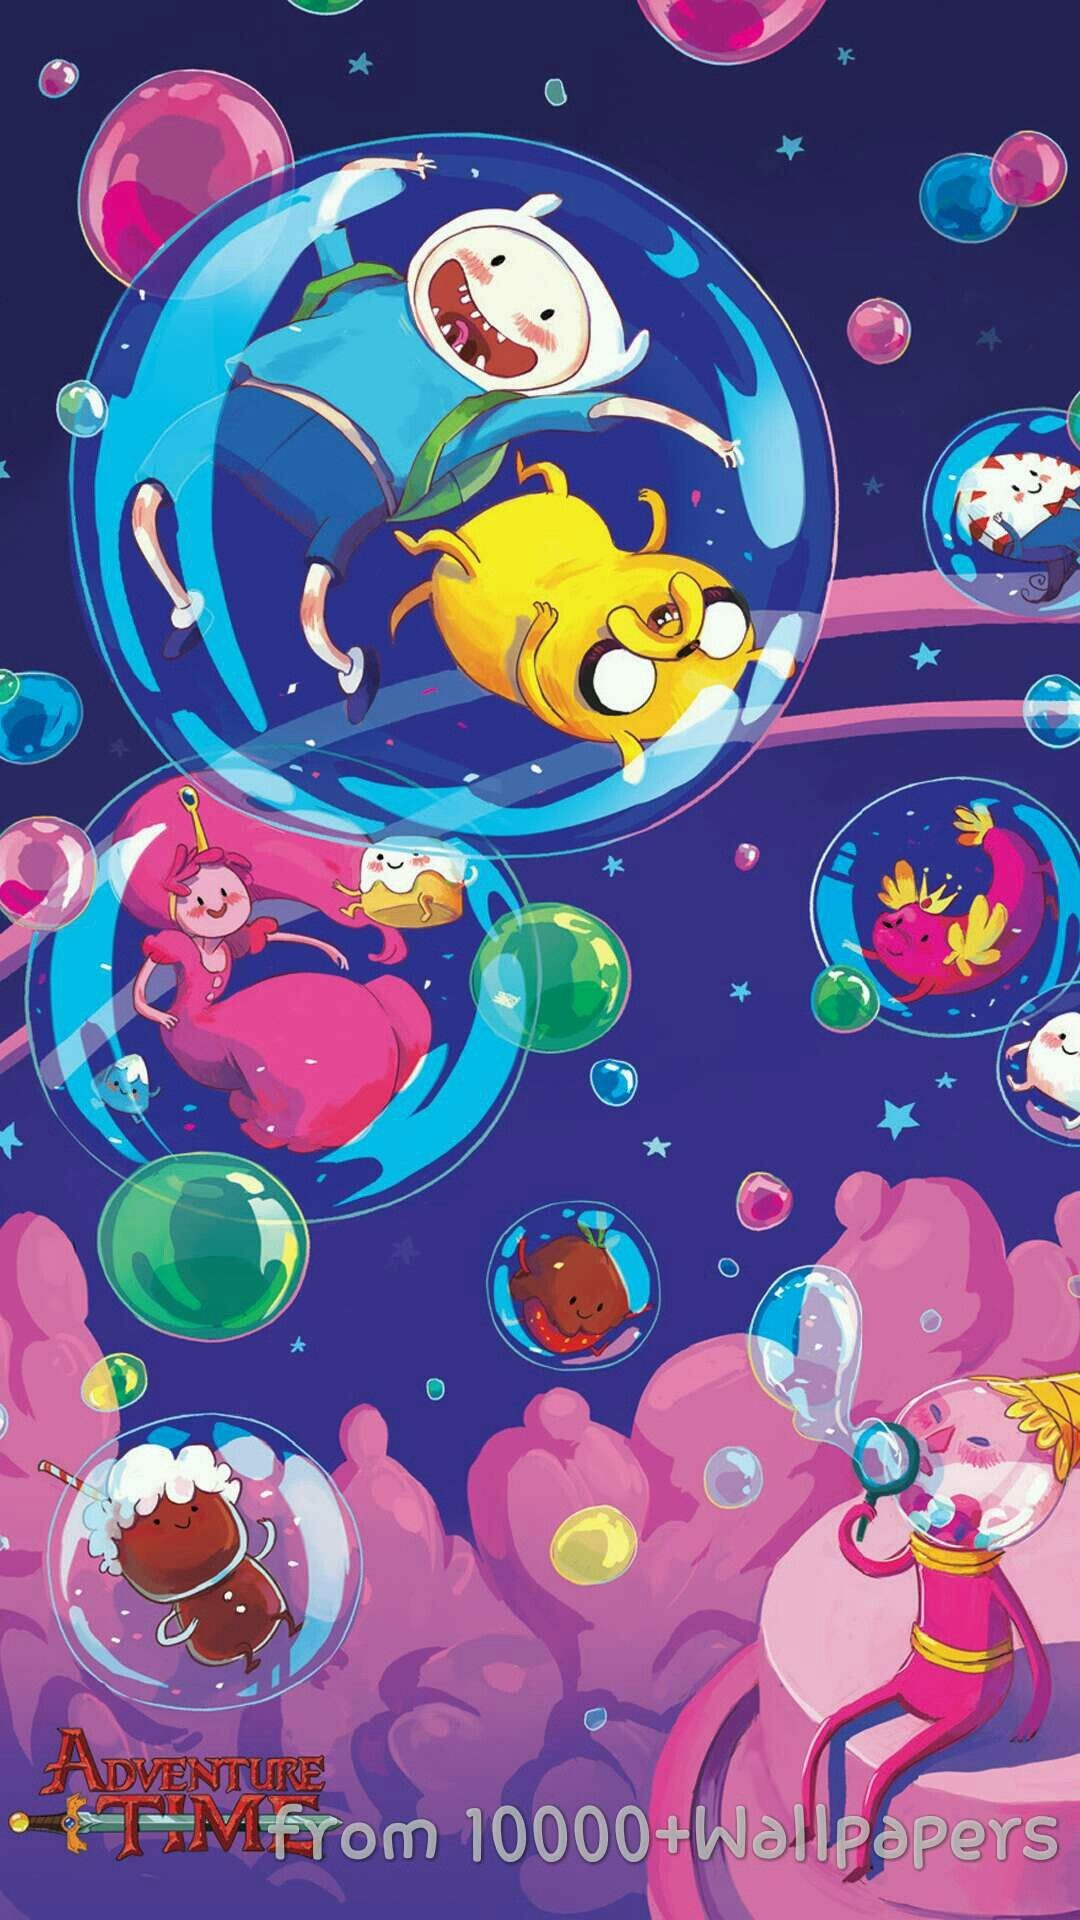 Anime Adventure Time Pictures adventure time iphone wallpaper (83+ pictures)